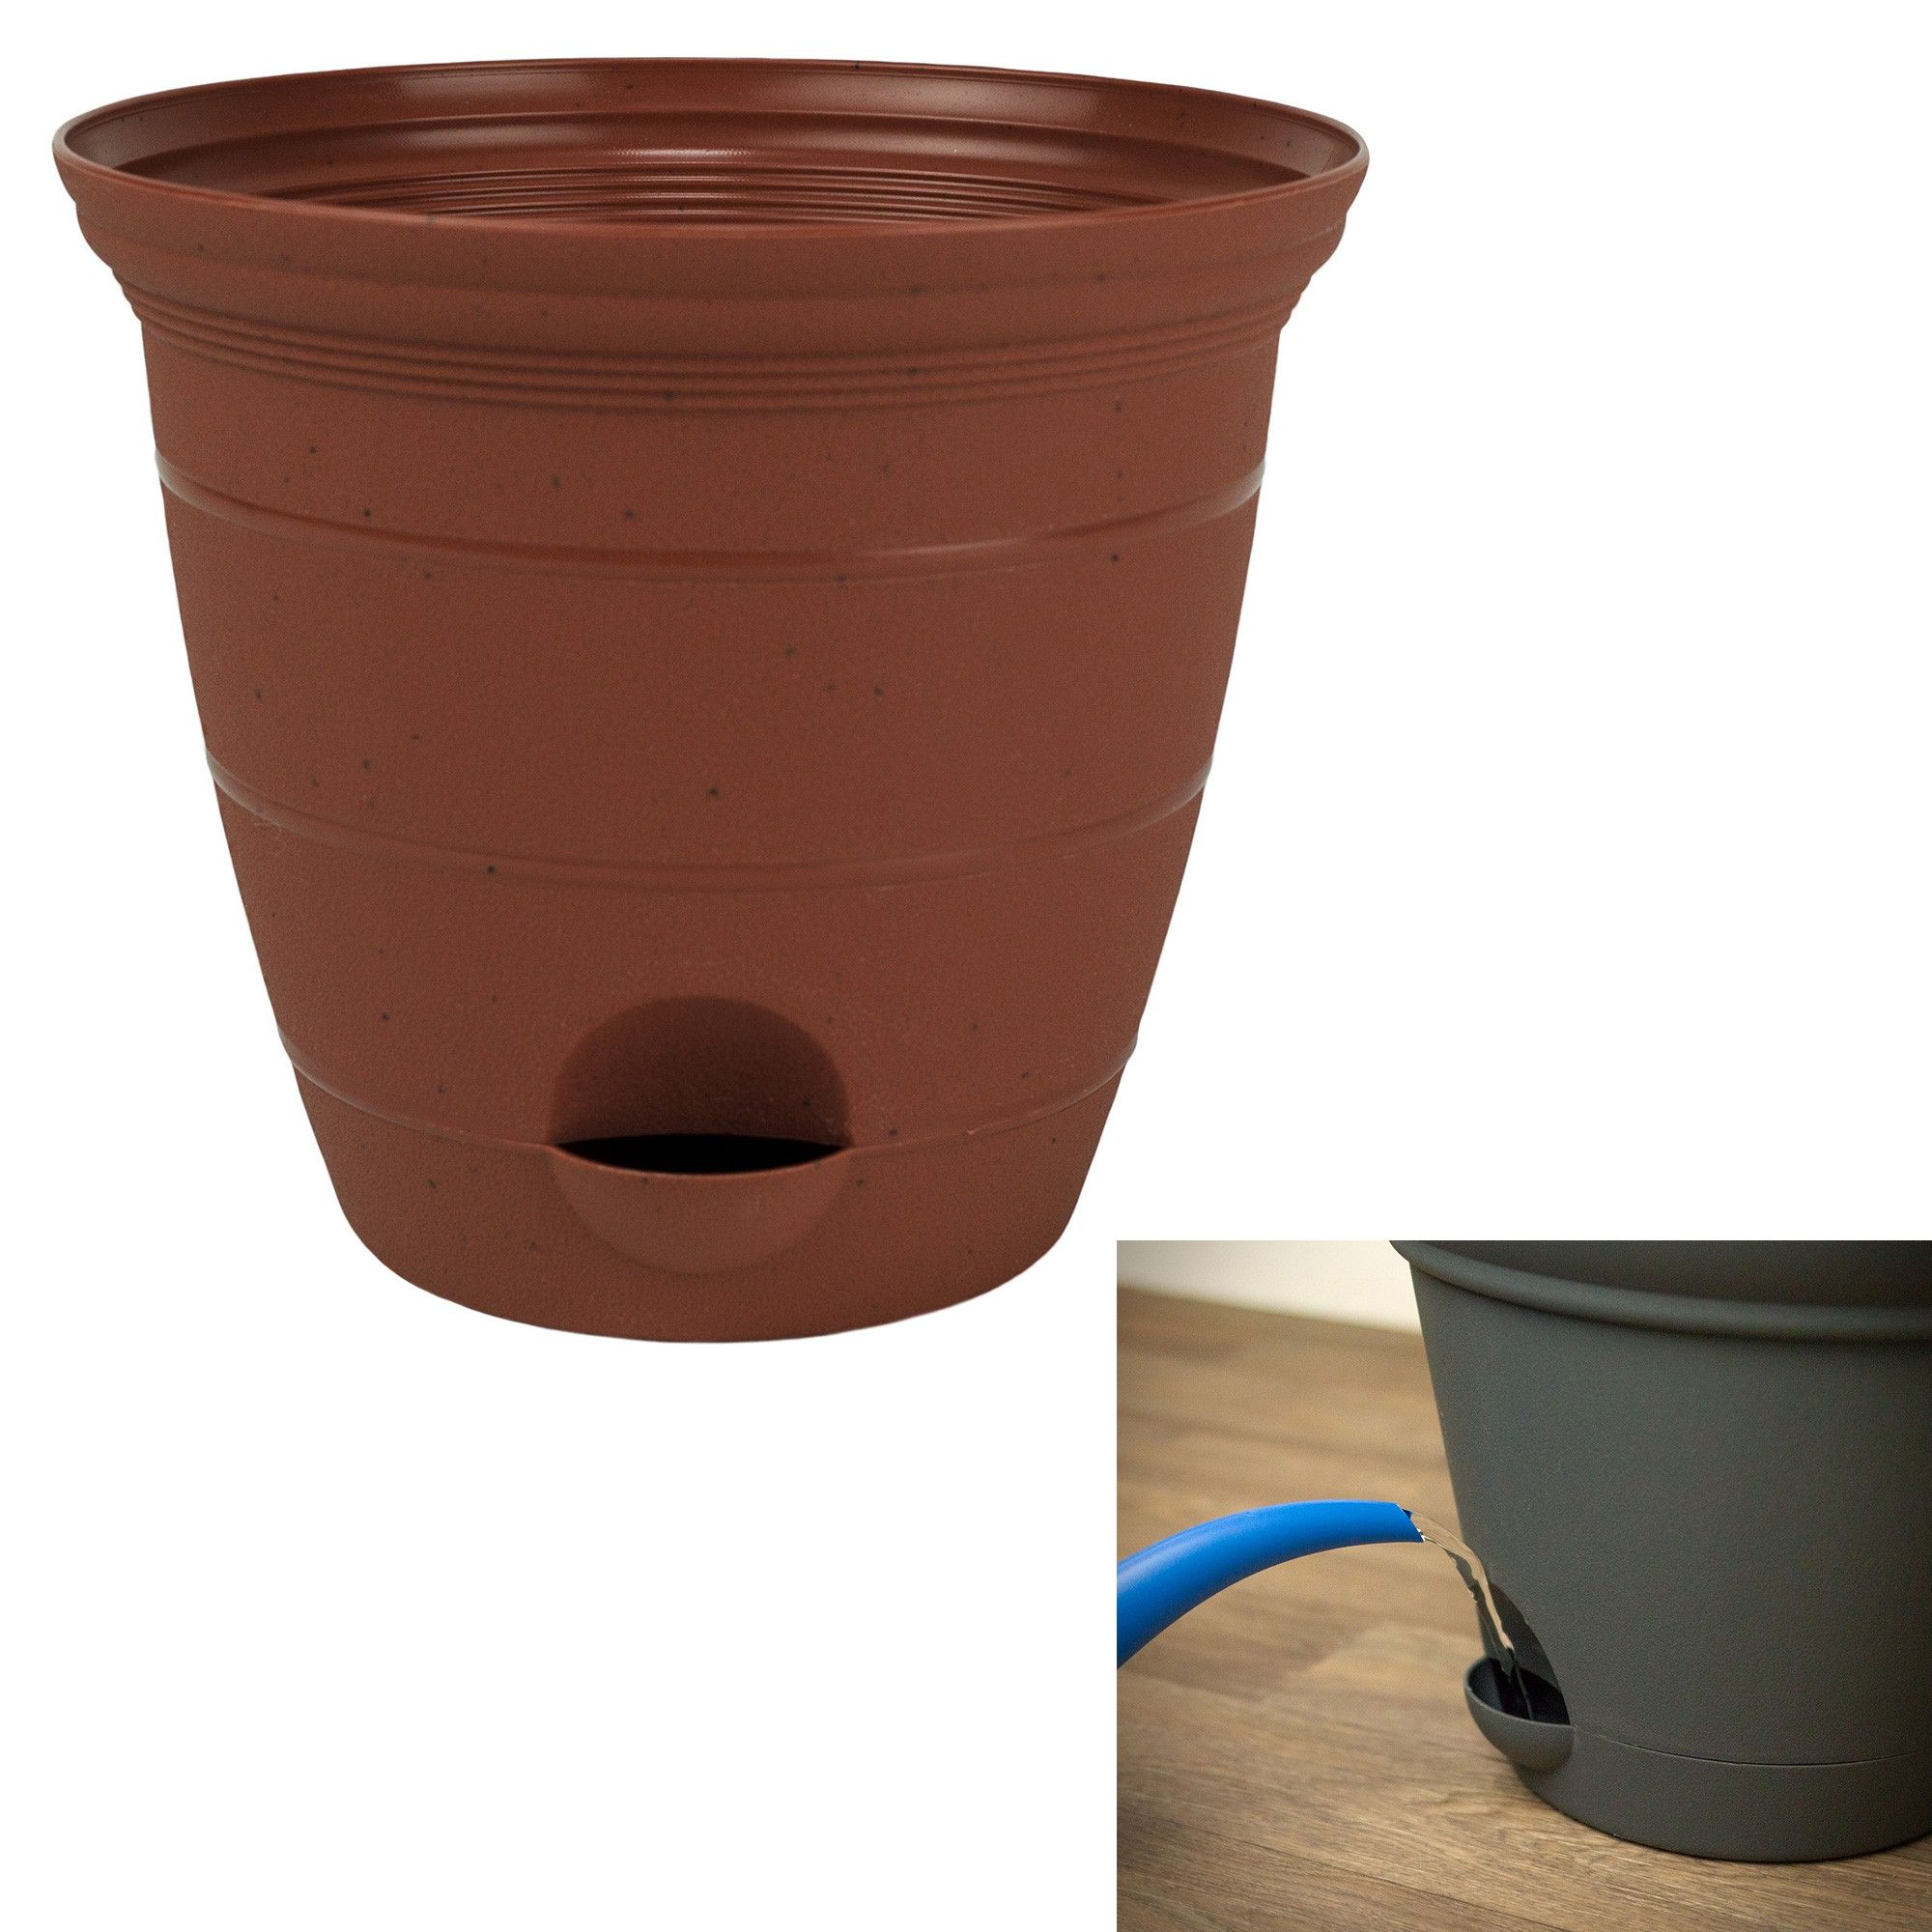 Misco 12 Inch Plastic Clay Color Self Watering Terra Flower Pot Or Garden Planter Flower Pots Planting Flowers Water Flowers